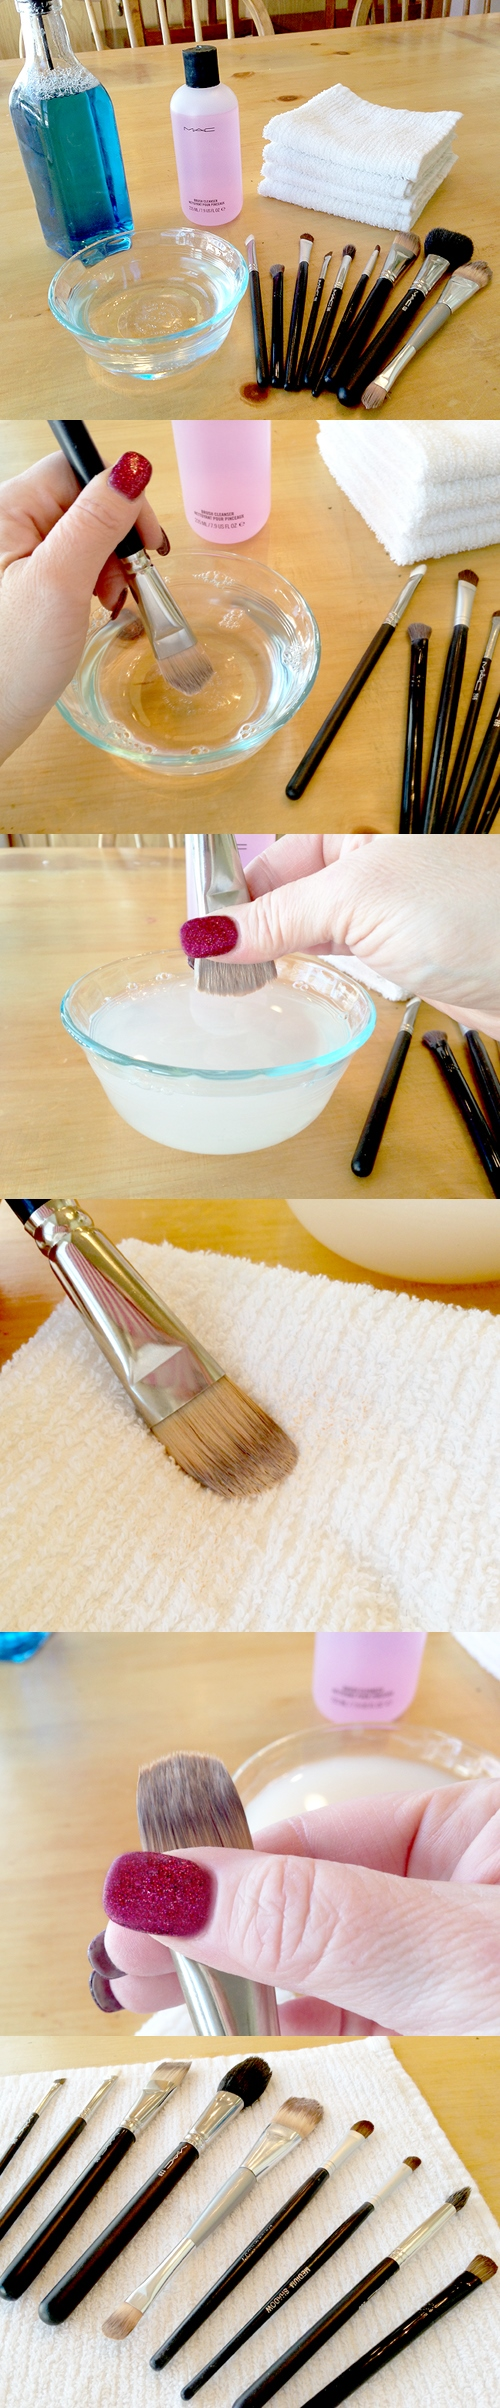 cleaning-makeup-brushes-vert